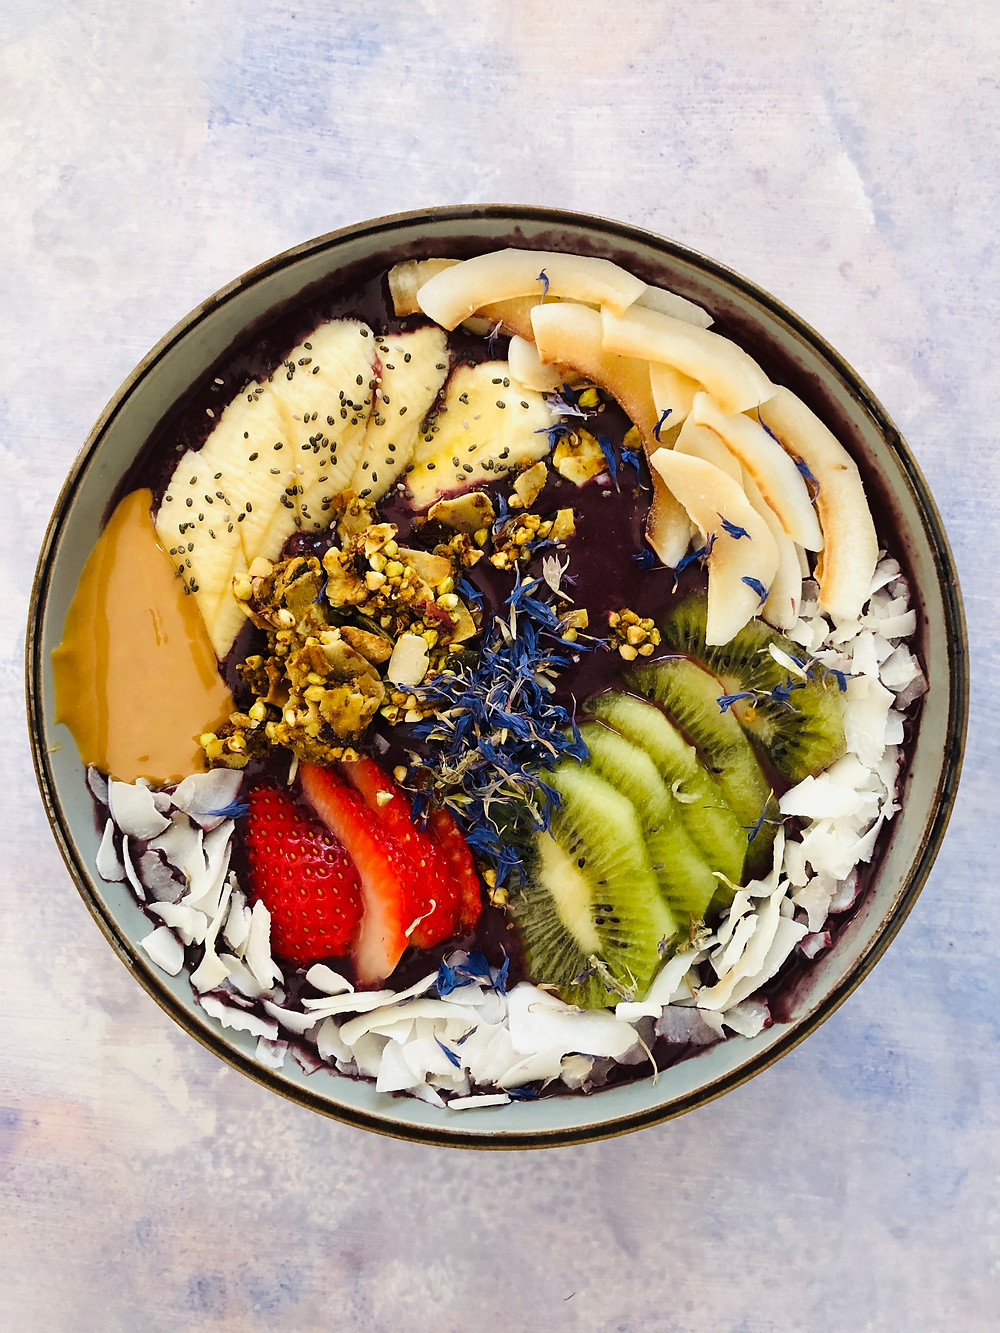 Colorful açaí bowl with banana, kiwi, strawberry, edible flowers, peanut butter and nuts